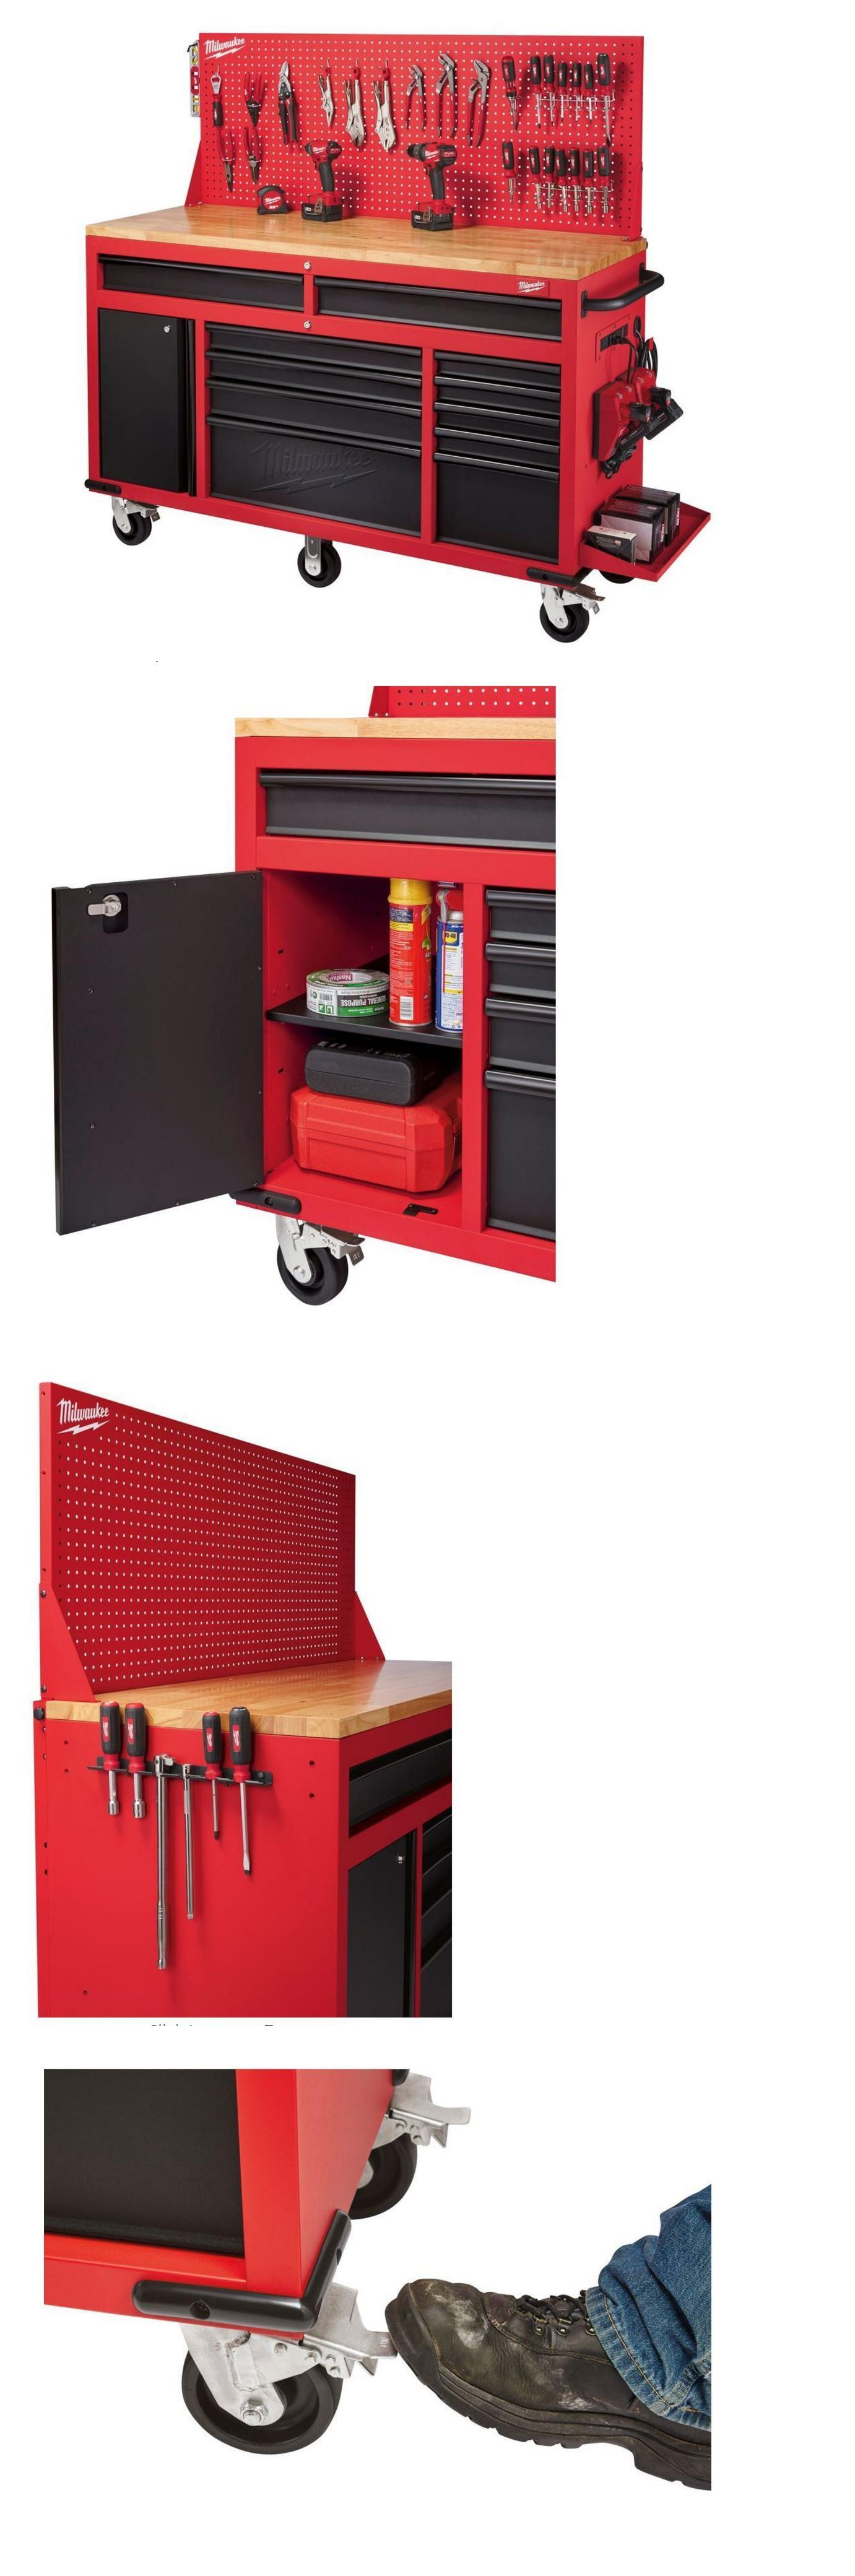 Bo And Cabinets 42363 Tool Chest On Wheels Rolling Workbench Combo Mobile Mechanics Storage Cabinet